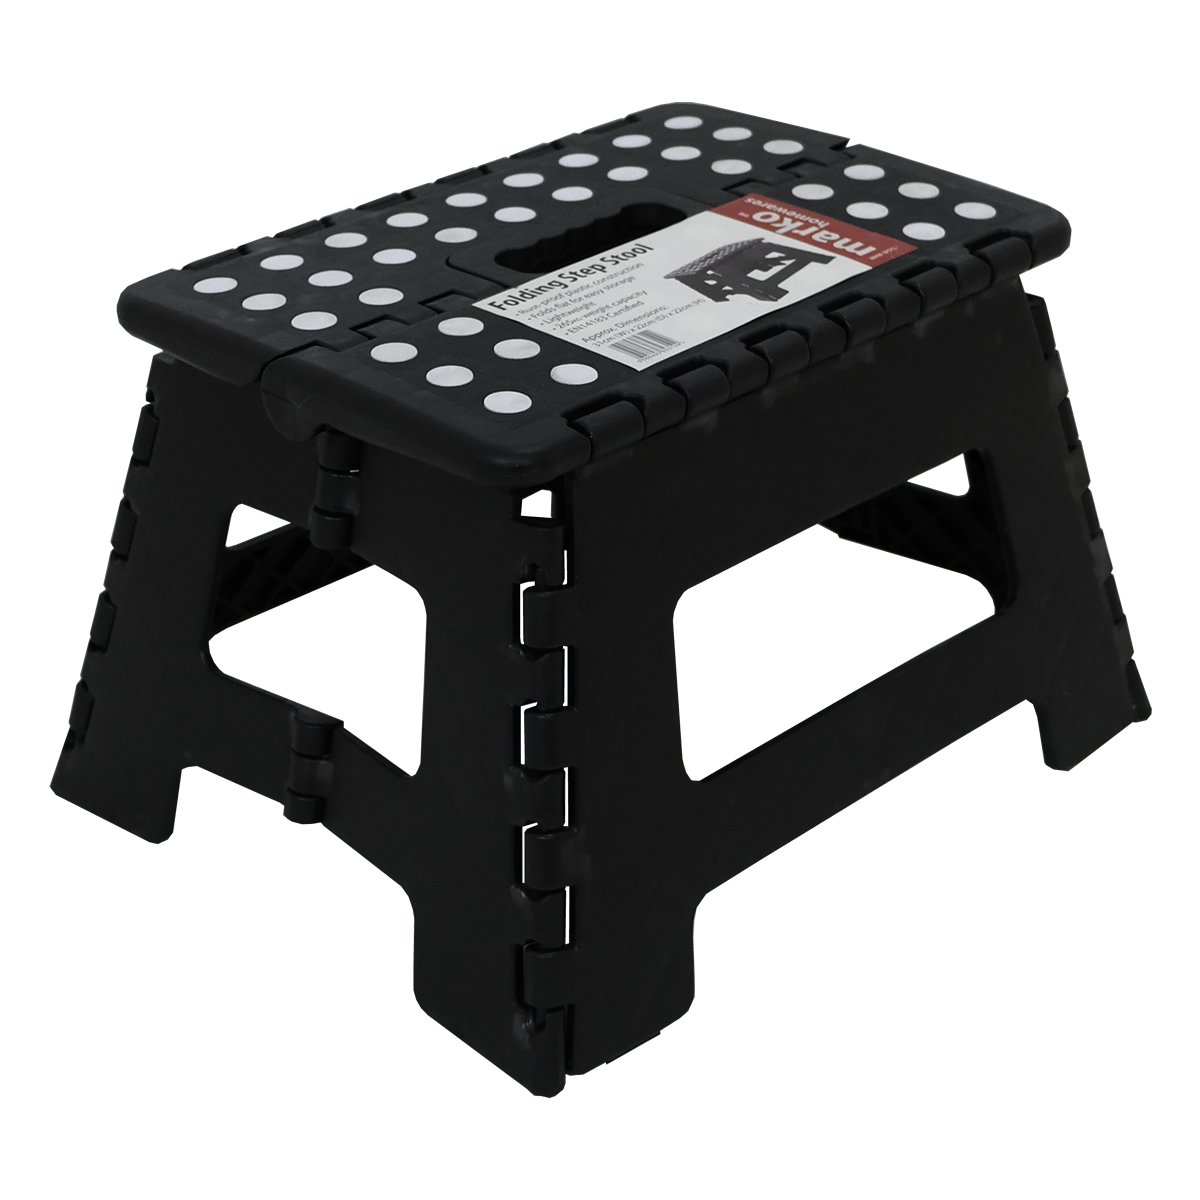 150KG Single Step Plastic Folding Step Up Stools Collapsible Foldaway Large Heavy Duty  sc 1 st  Amazon UK & 150KG Tall Single Step Plastic Folding Step Up Stools Collapsible ... islam-shia.org